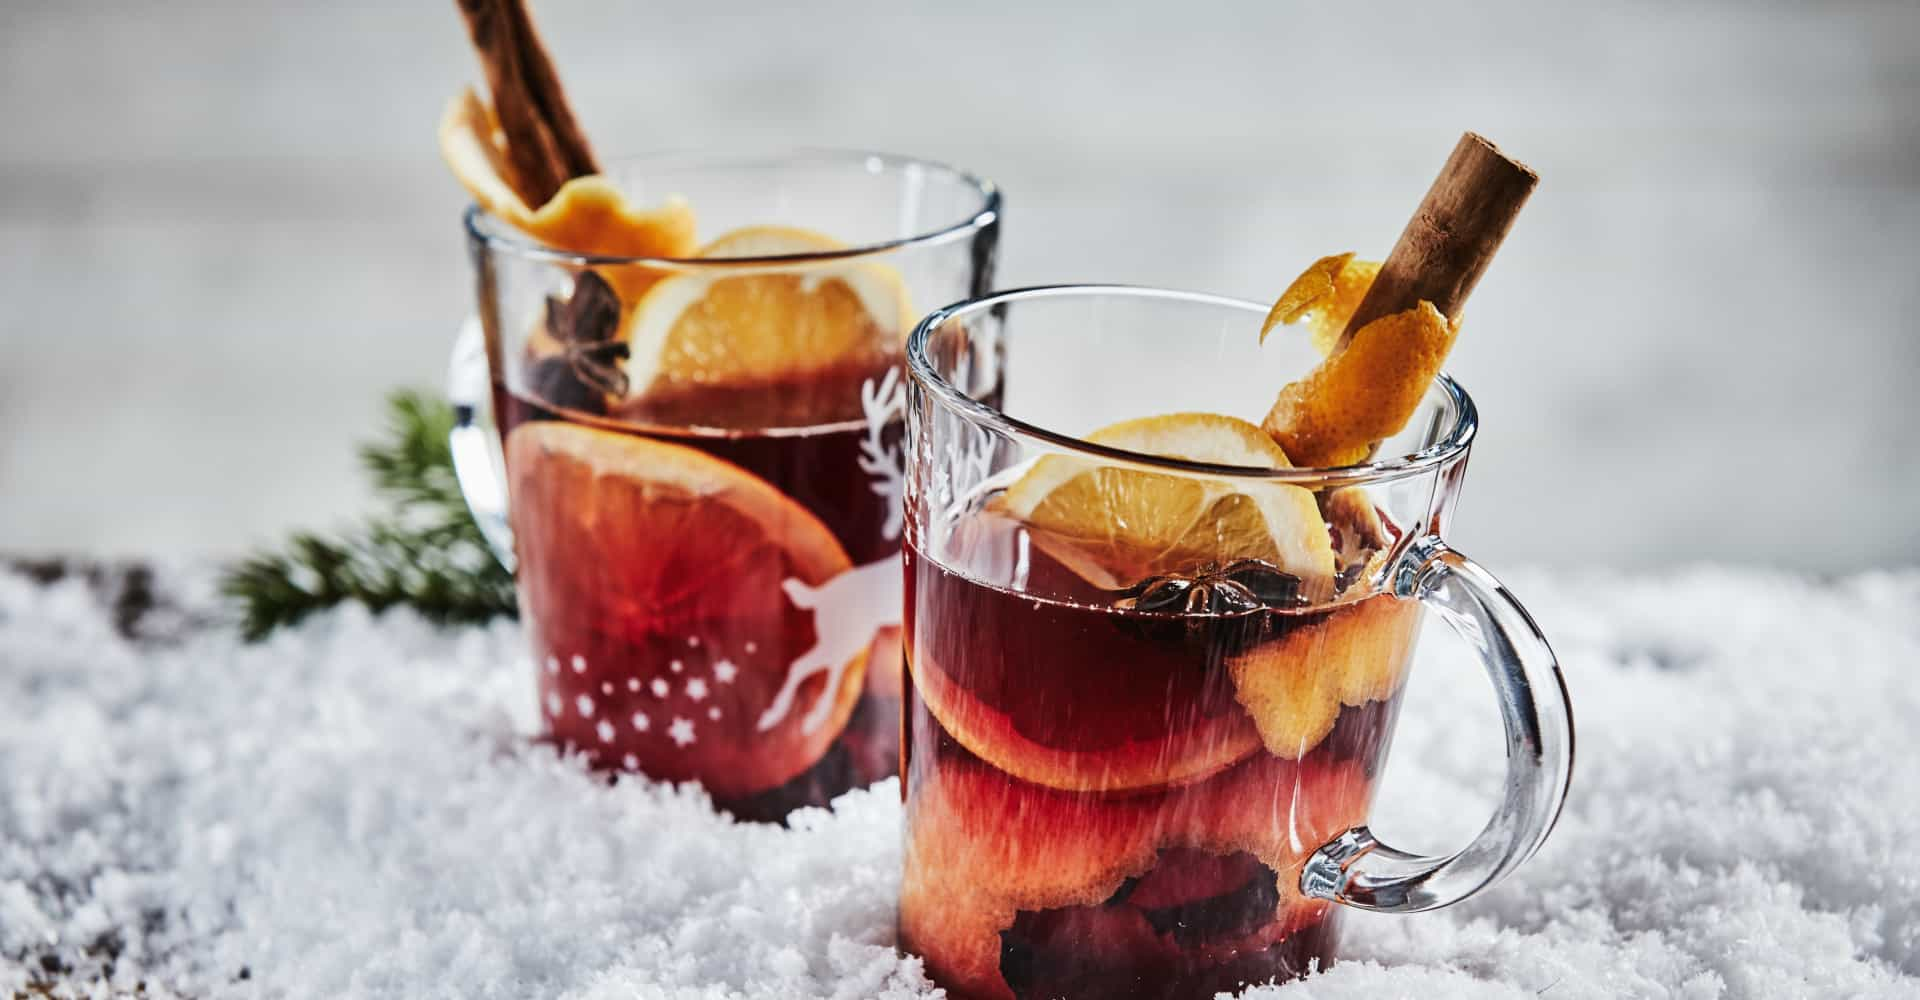 Weetje over Gluhwein